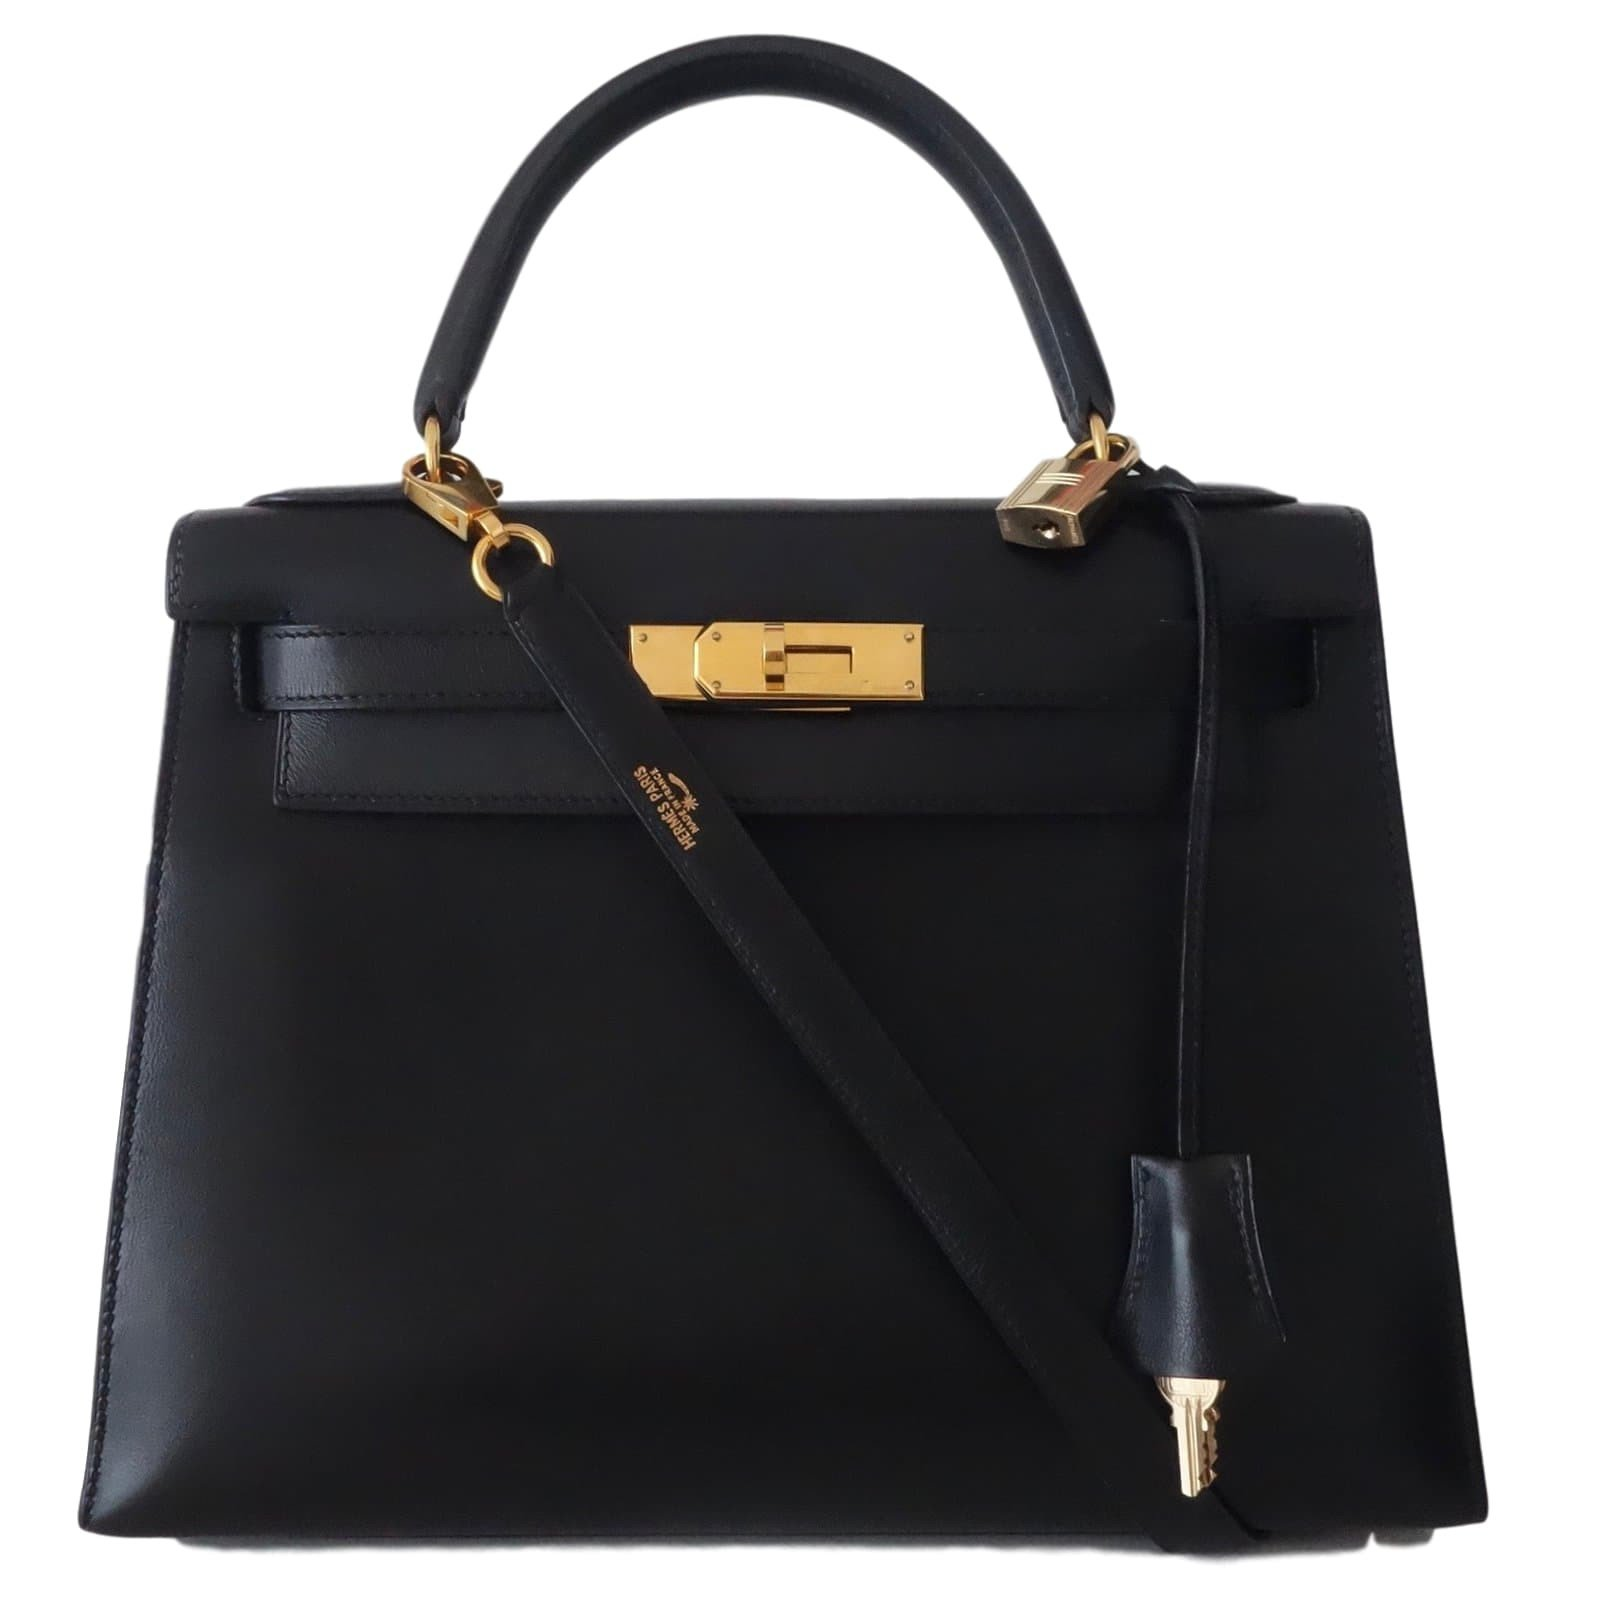 Innovative Handbags Hermes Women How Much Is A Birkin Bag